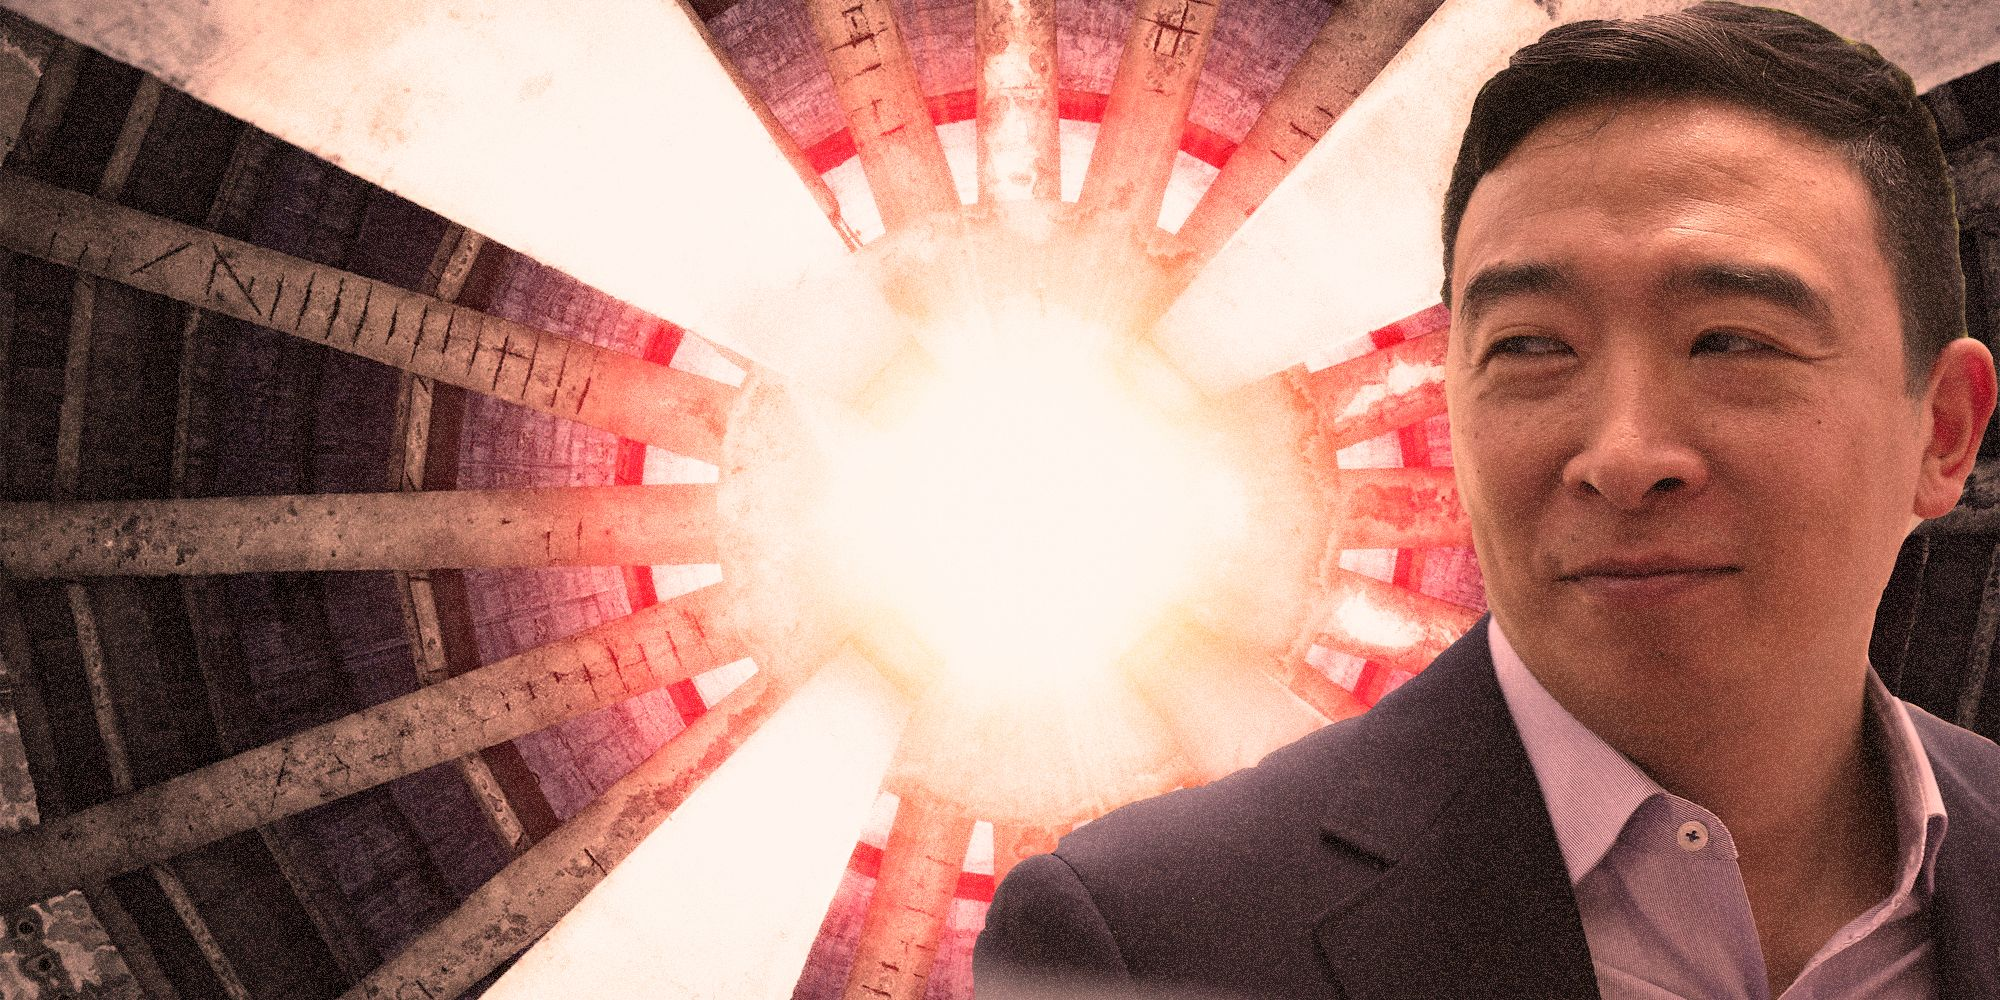 Andrew Yang Wants Thorium Nuclear Power. Here's What That Means.